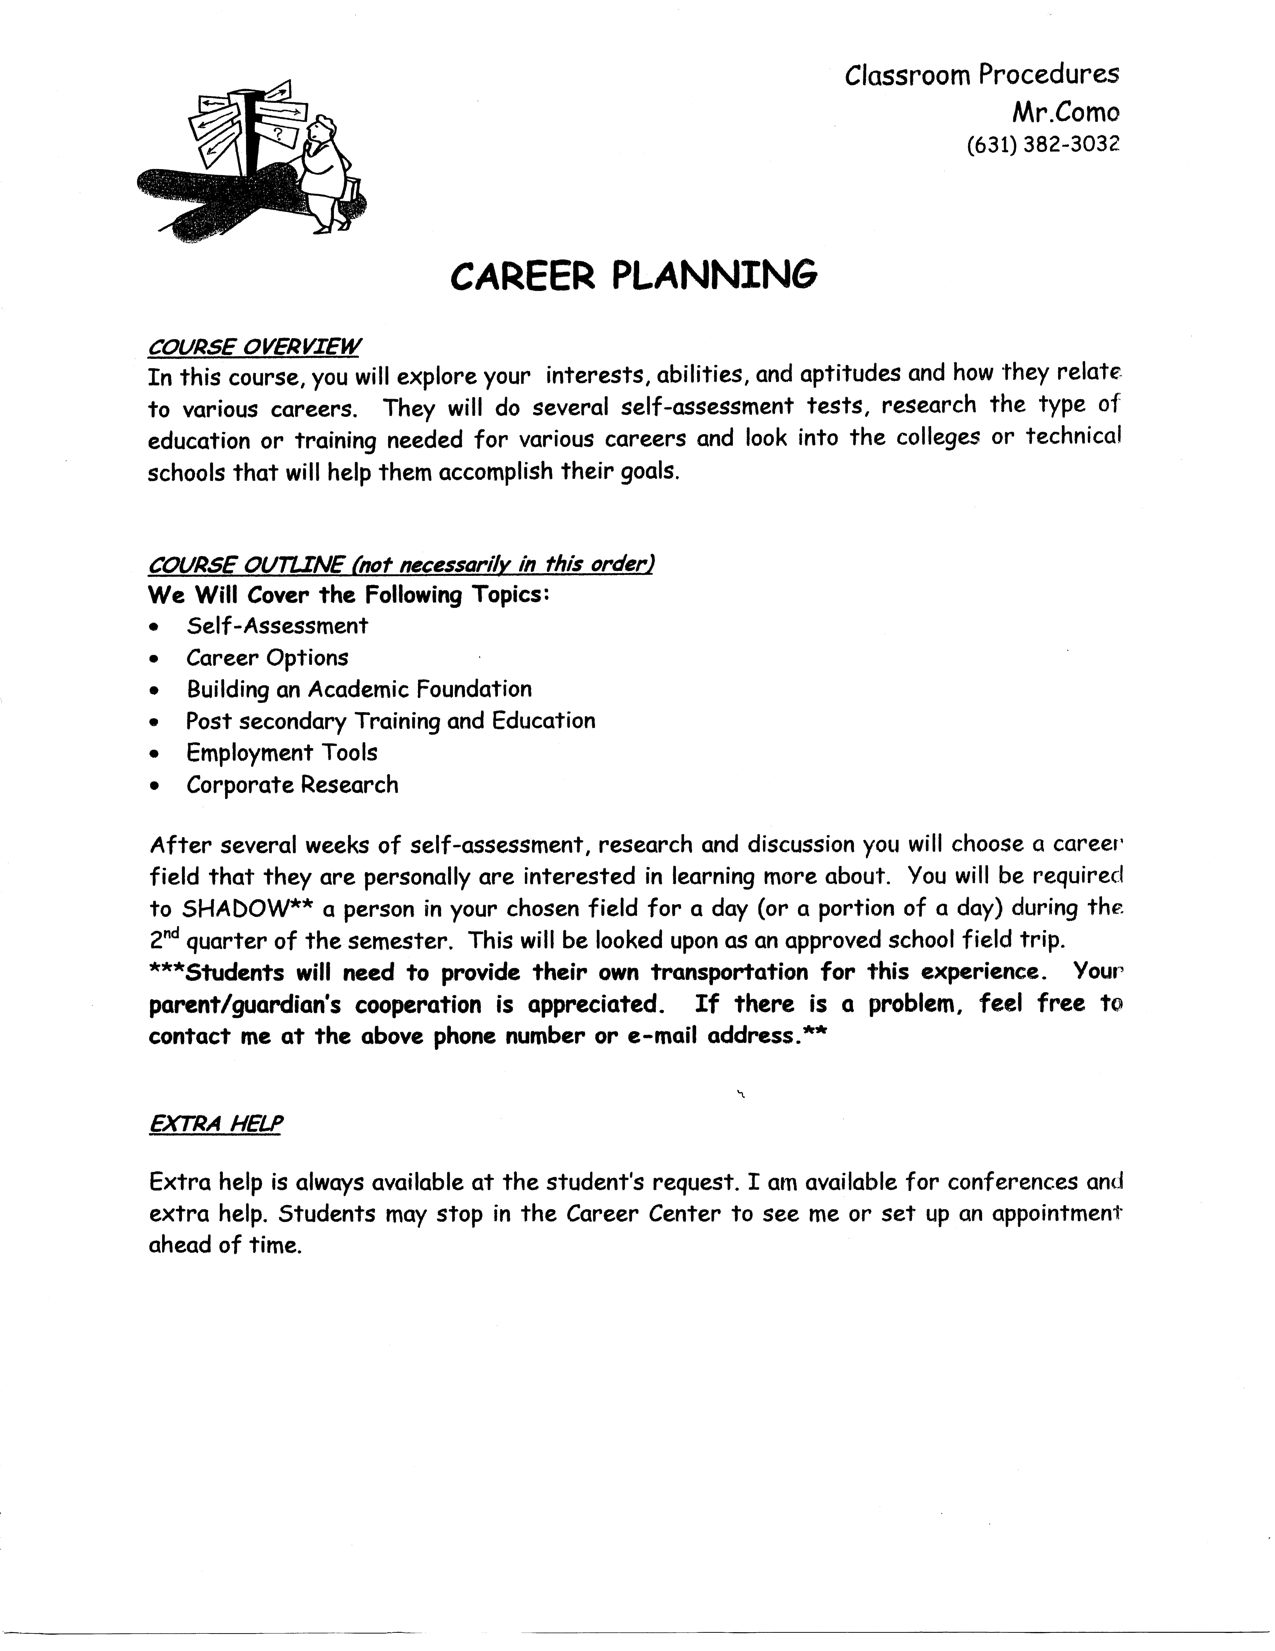 essay on career plans after college